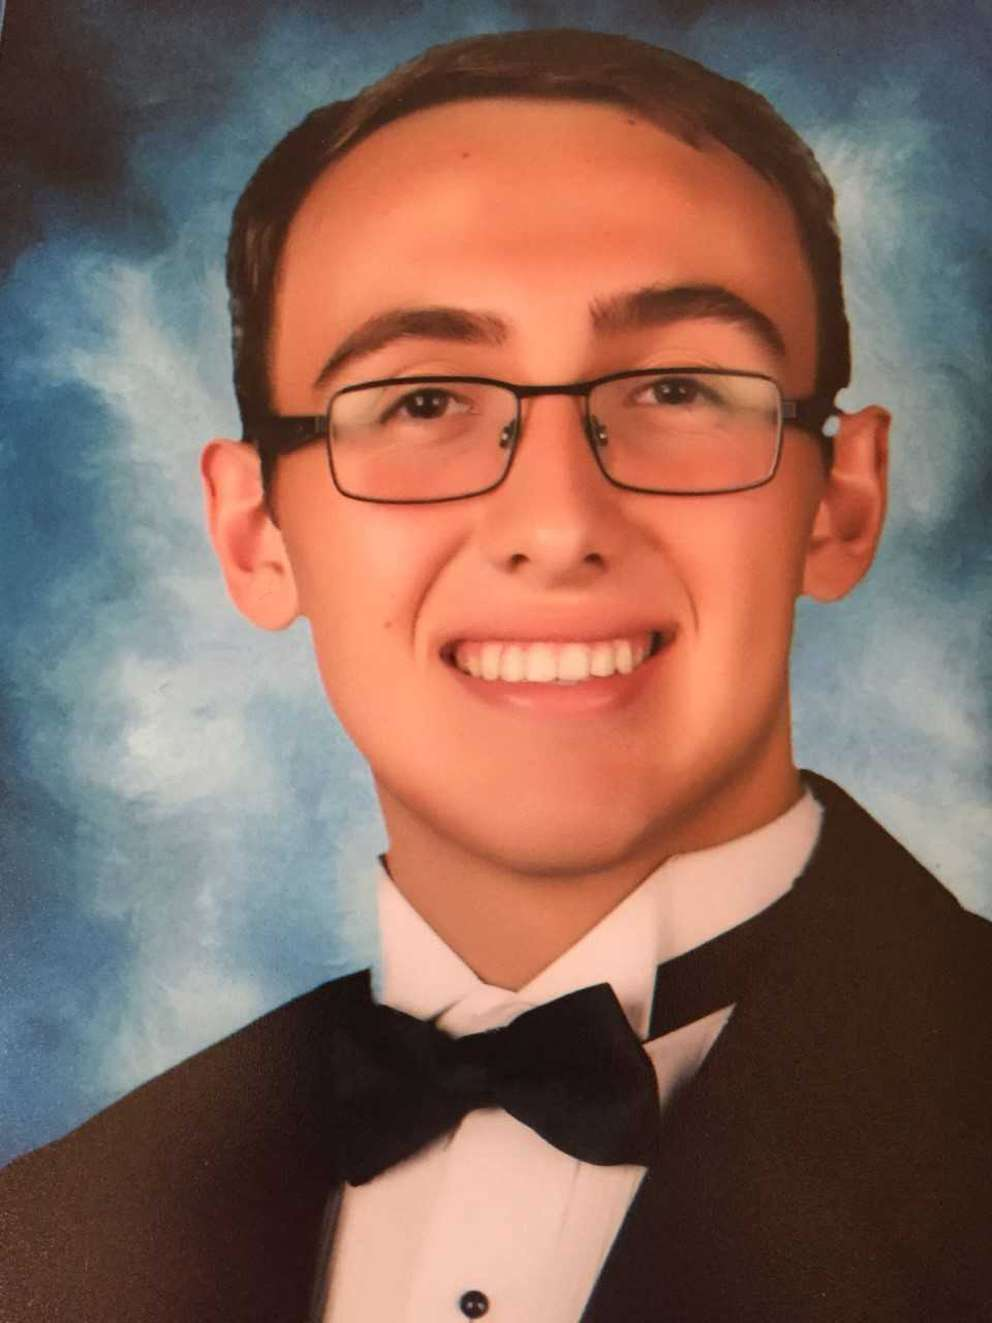 Eli Thomas Rust is a 2018 co-valedictorian in the International Baccalaureate program at St. Petersburg High School.